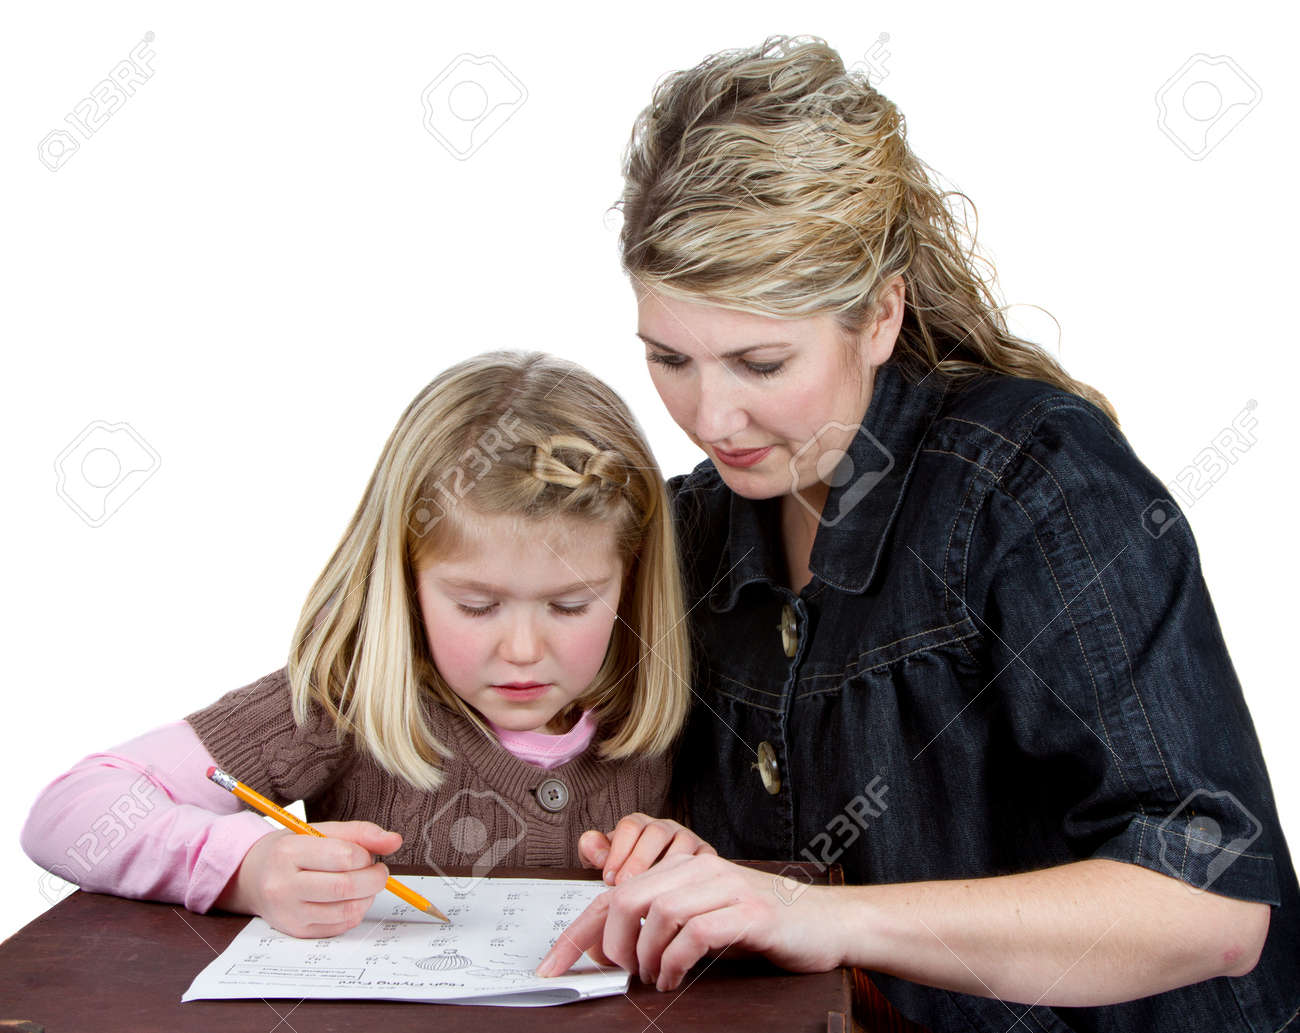 a teacher or maom helping a student or child homework stock photo a teacher or maom helping a student or child homework pointing at math homework while child works on problem isolated on a white